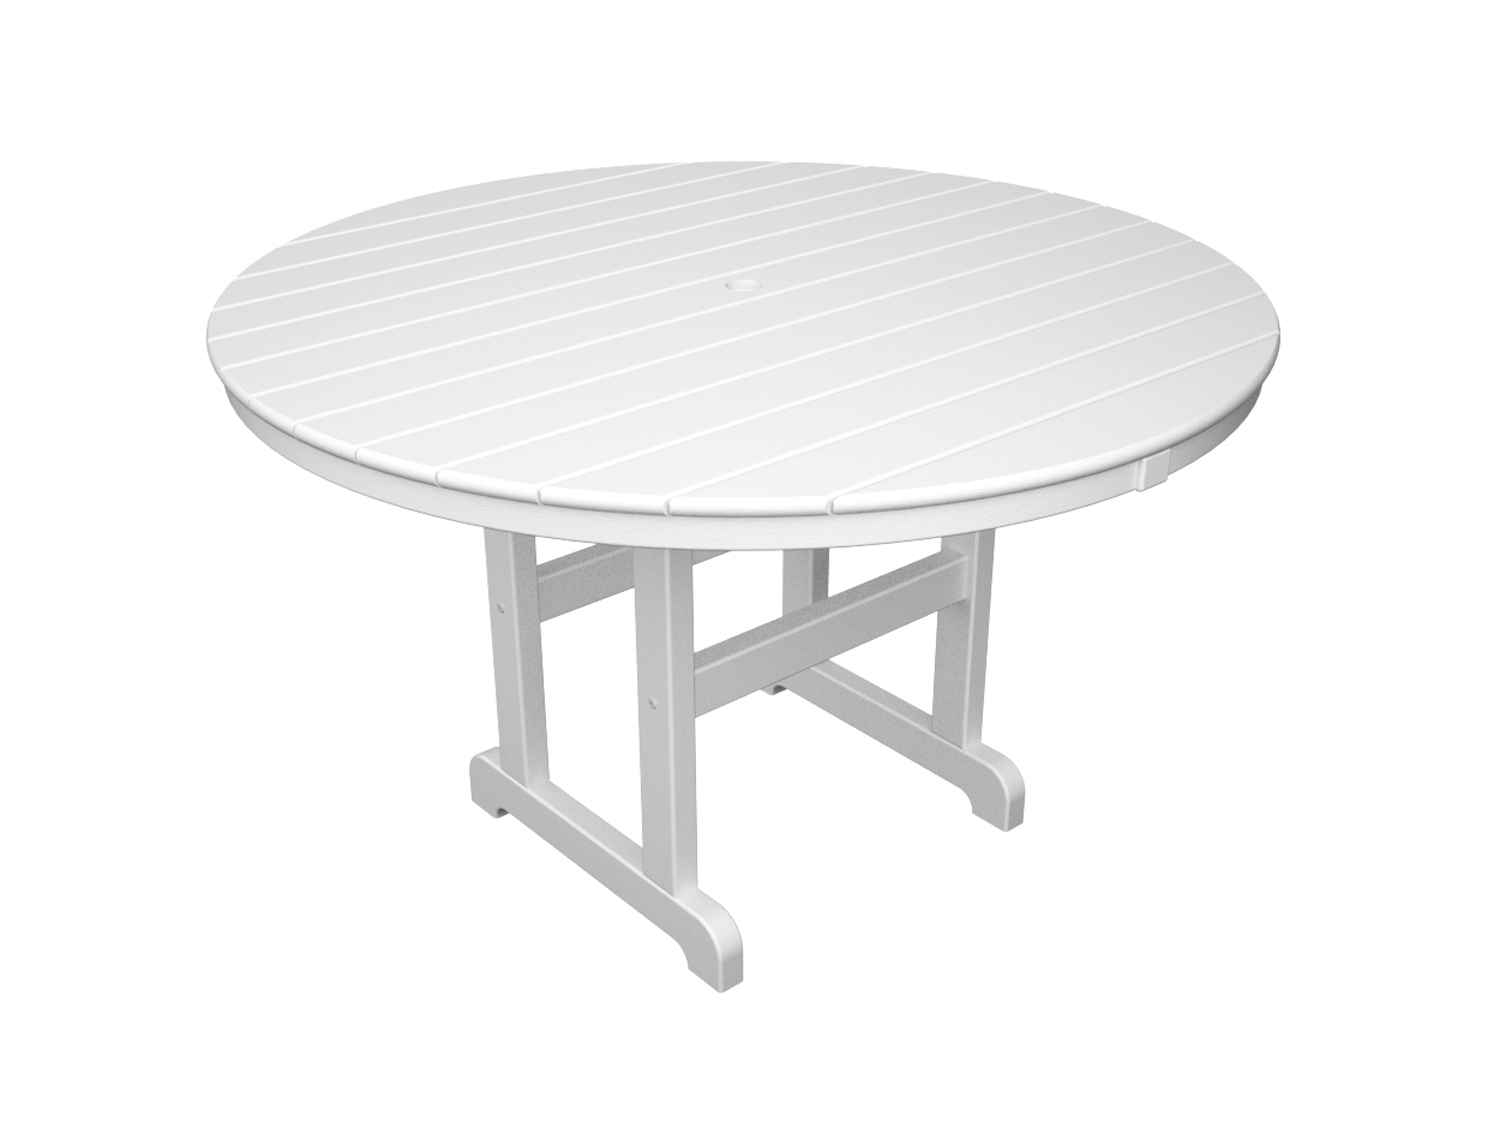 Polywood La Casa White Cafe Outdoor Table